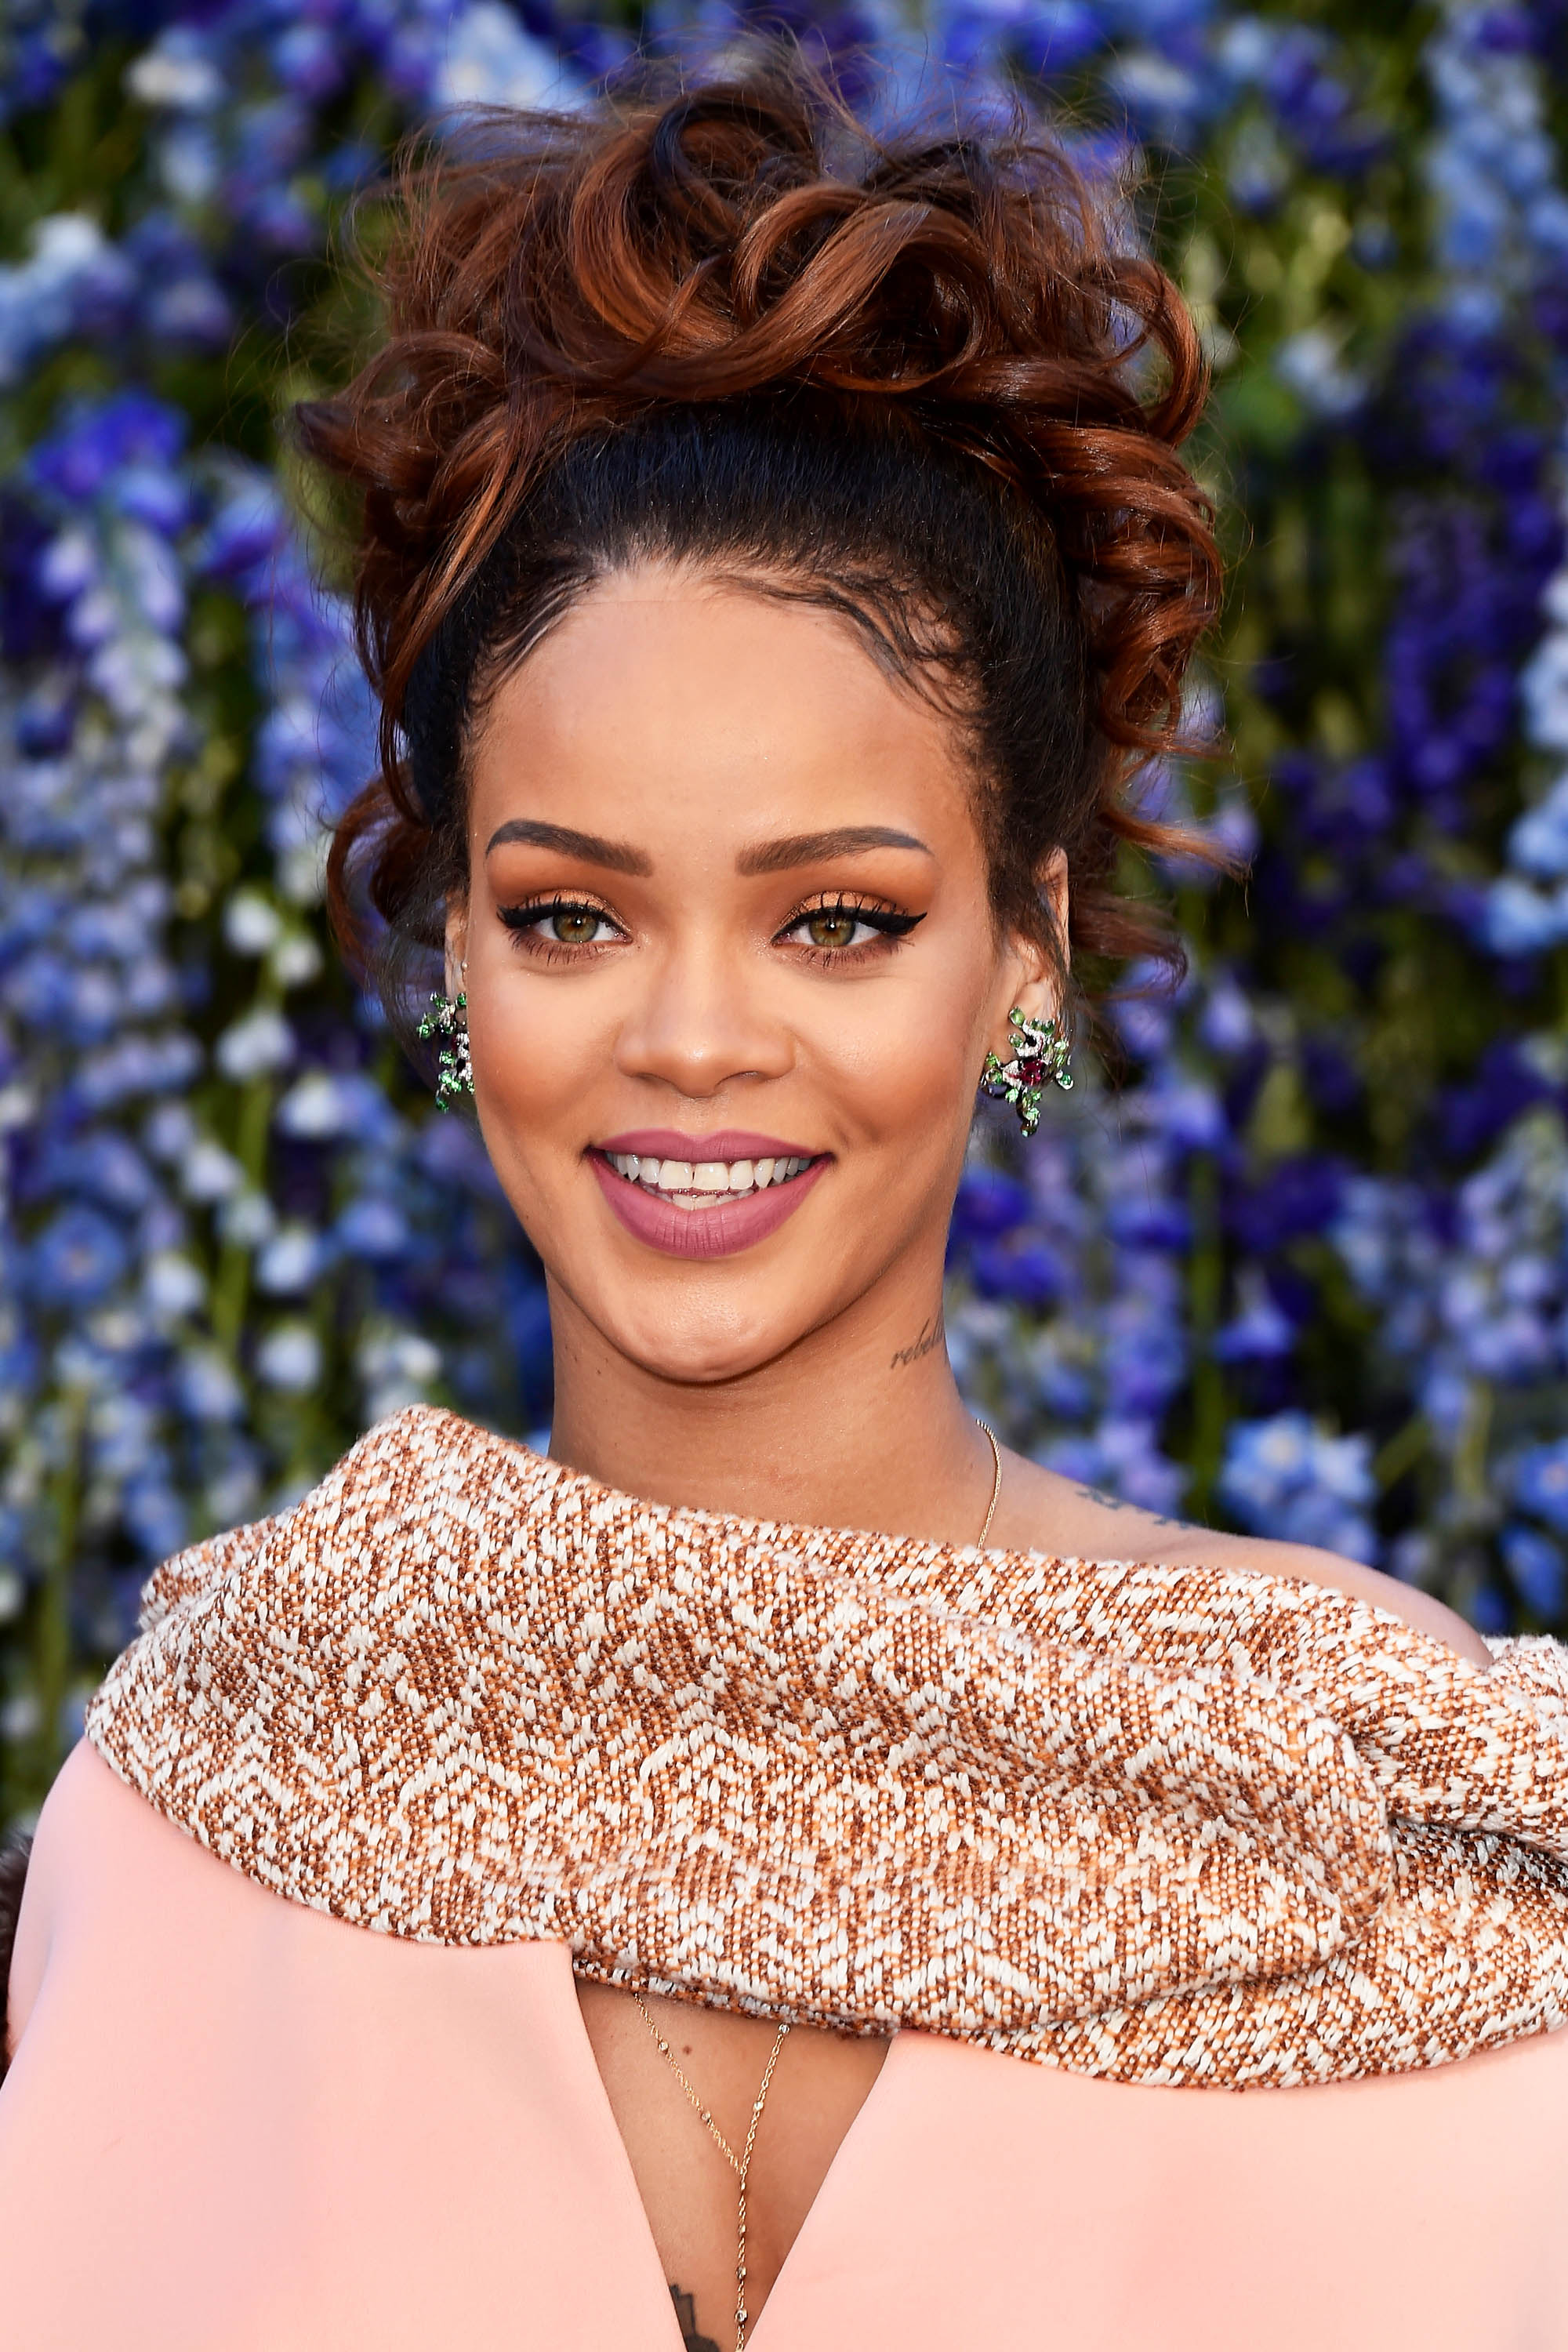 Fabulous 50 Best Rihanna Hairstyles Our Favorite Rihanna Hair Looks Of Hairstyles For Women Draintrainus